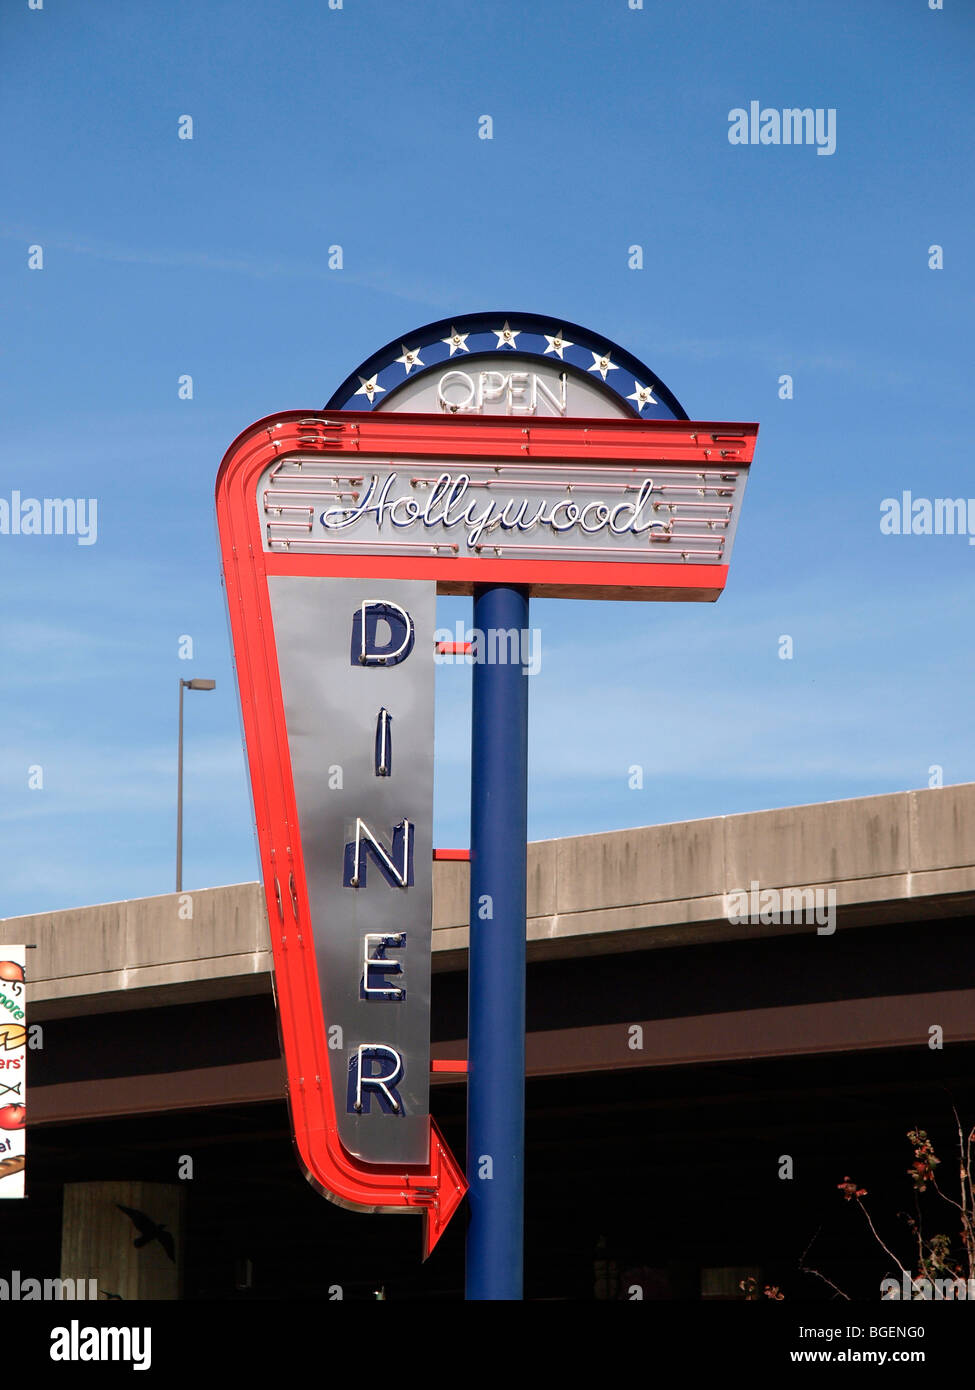 The The Hollywood Diner featured in films such as Barry Levinson's 'Diner' and 'Liberty Heights' - Stock Image